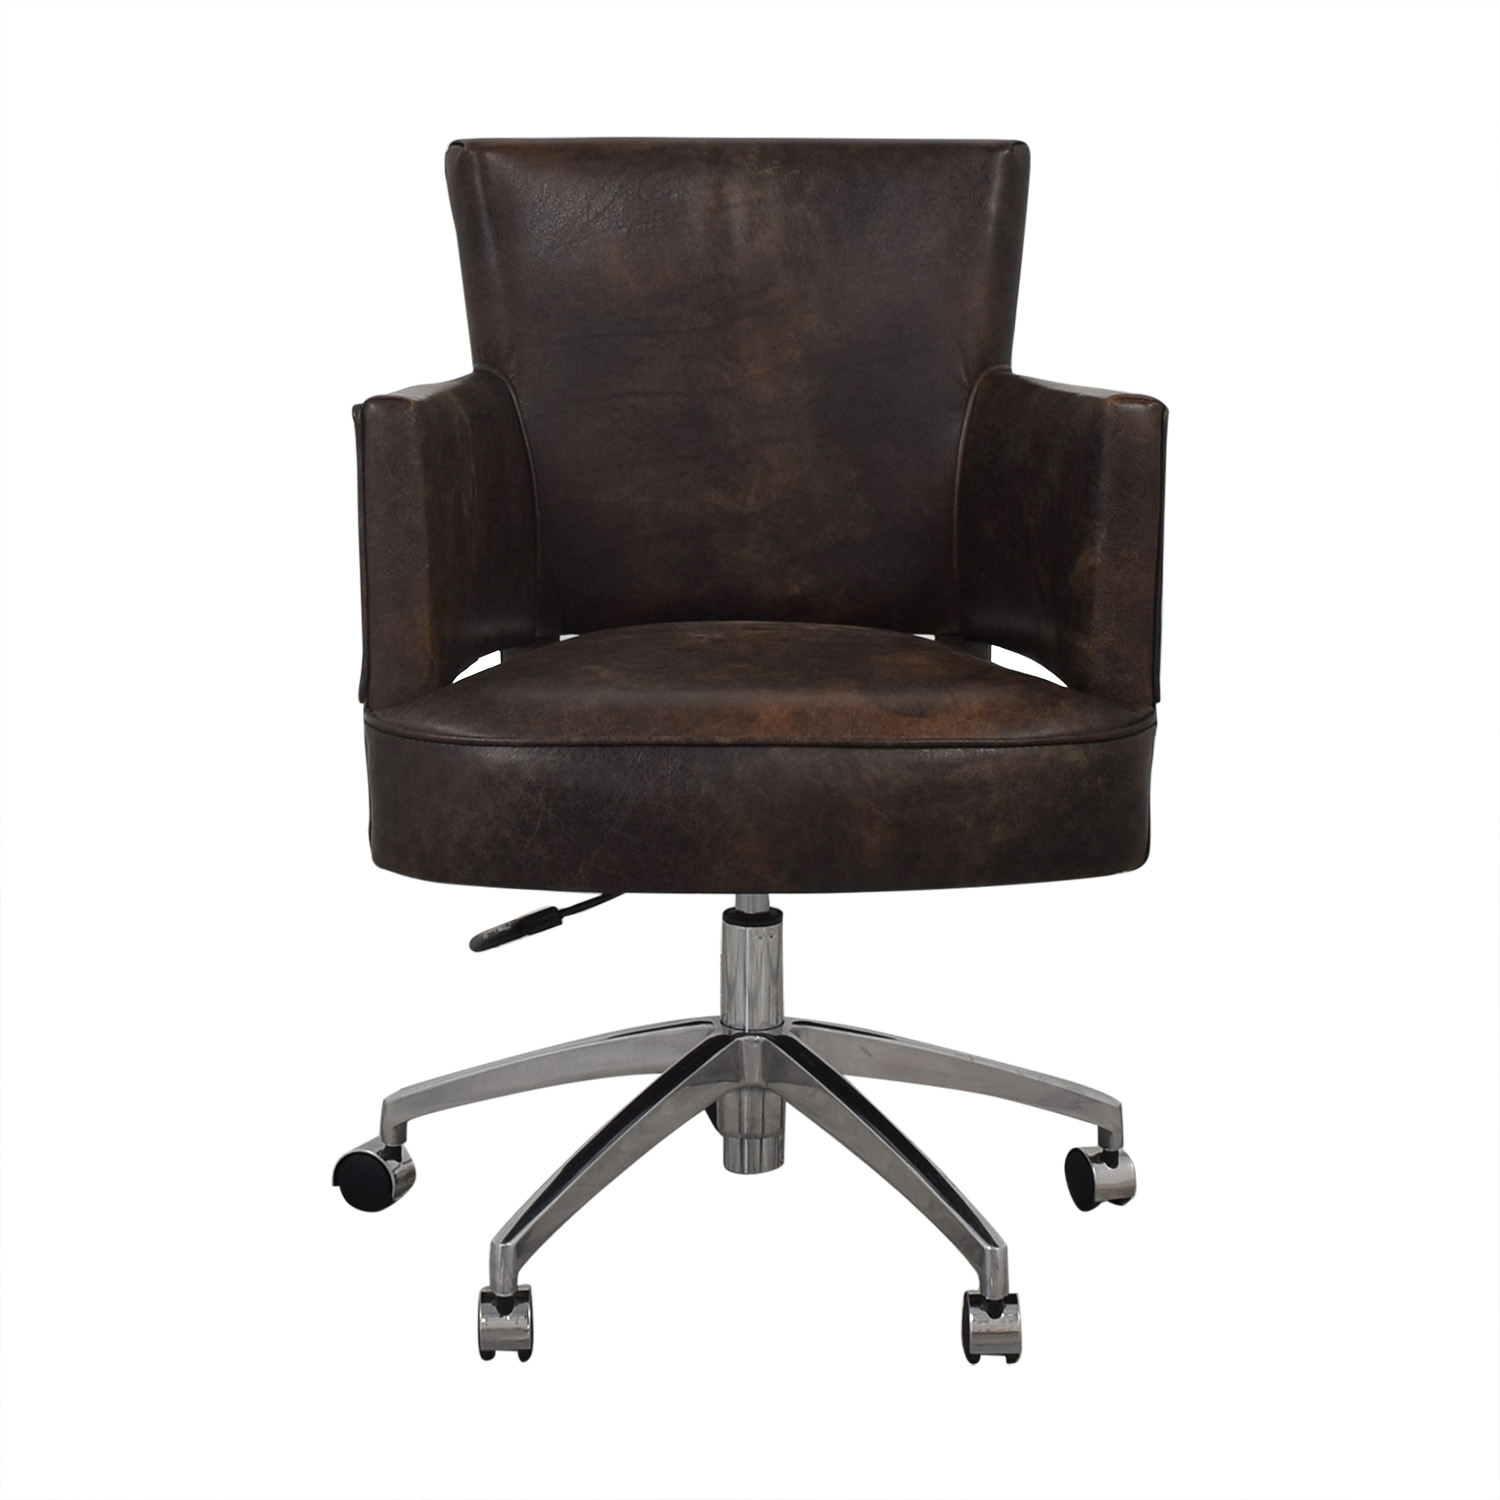 Timothy Oulton Timothy Oulton Swinderby Chair Home Office Chairs